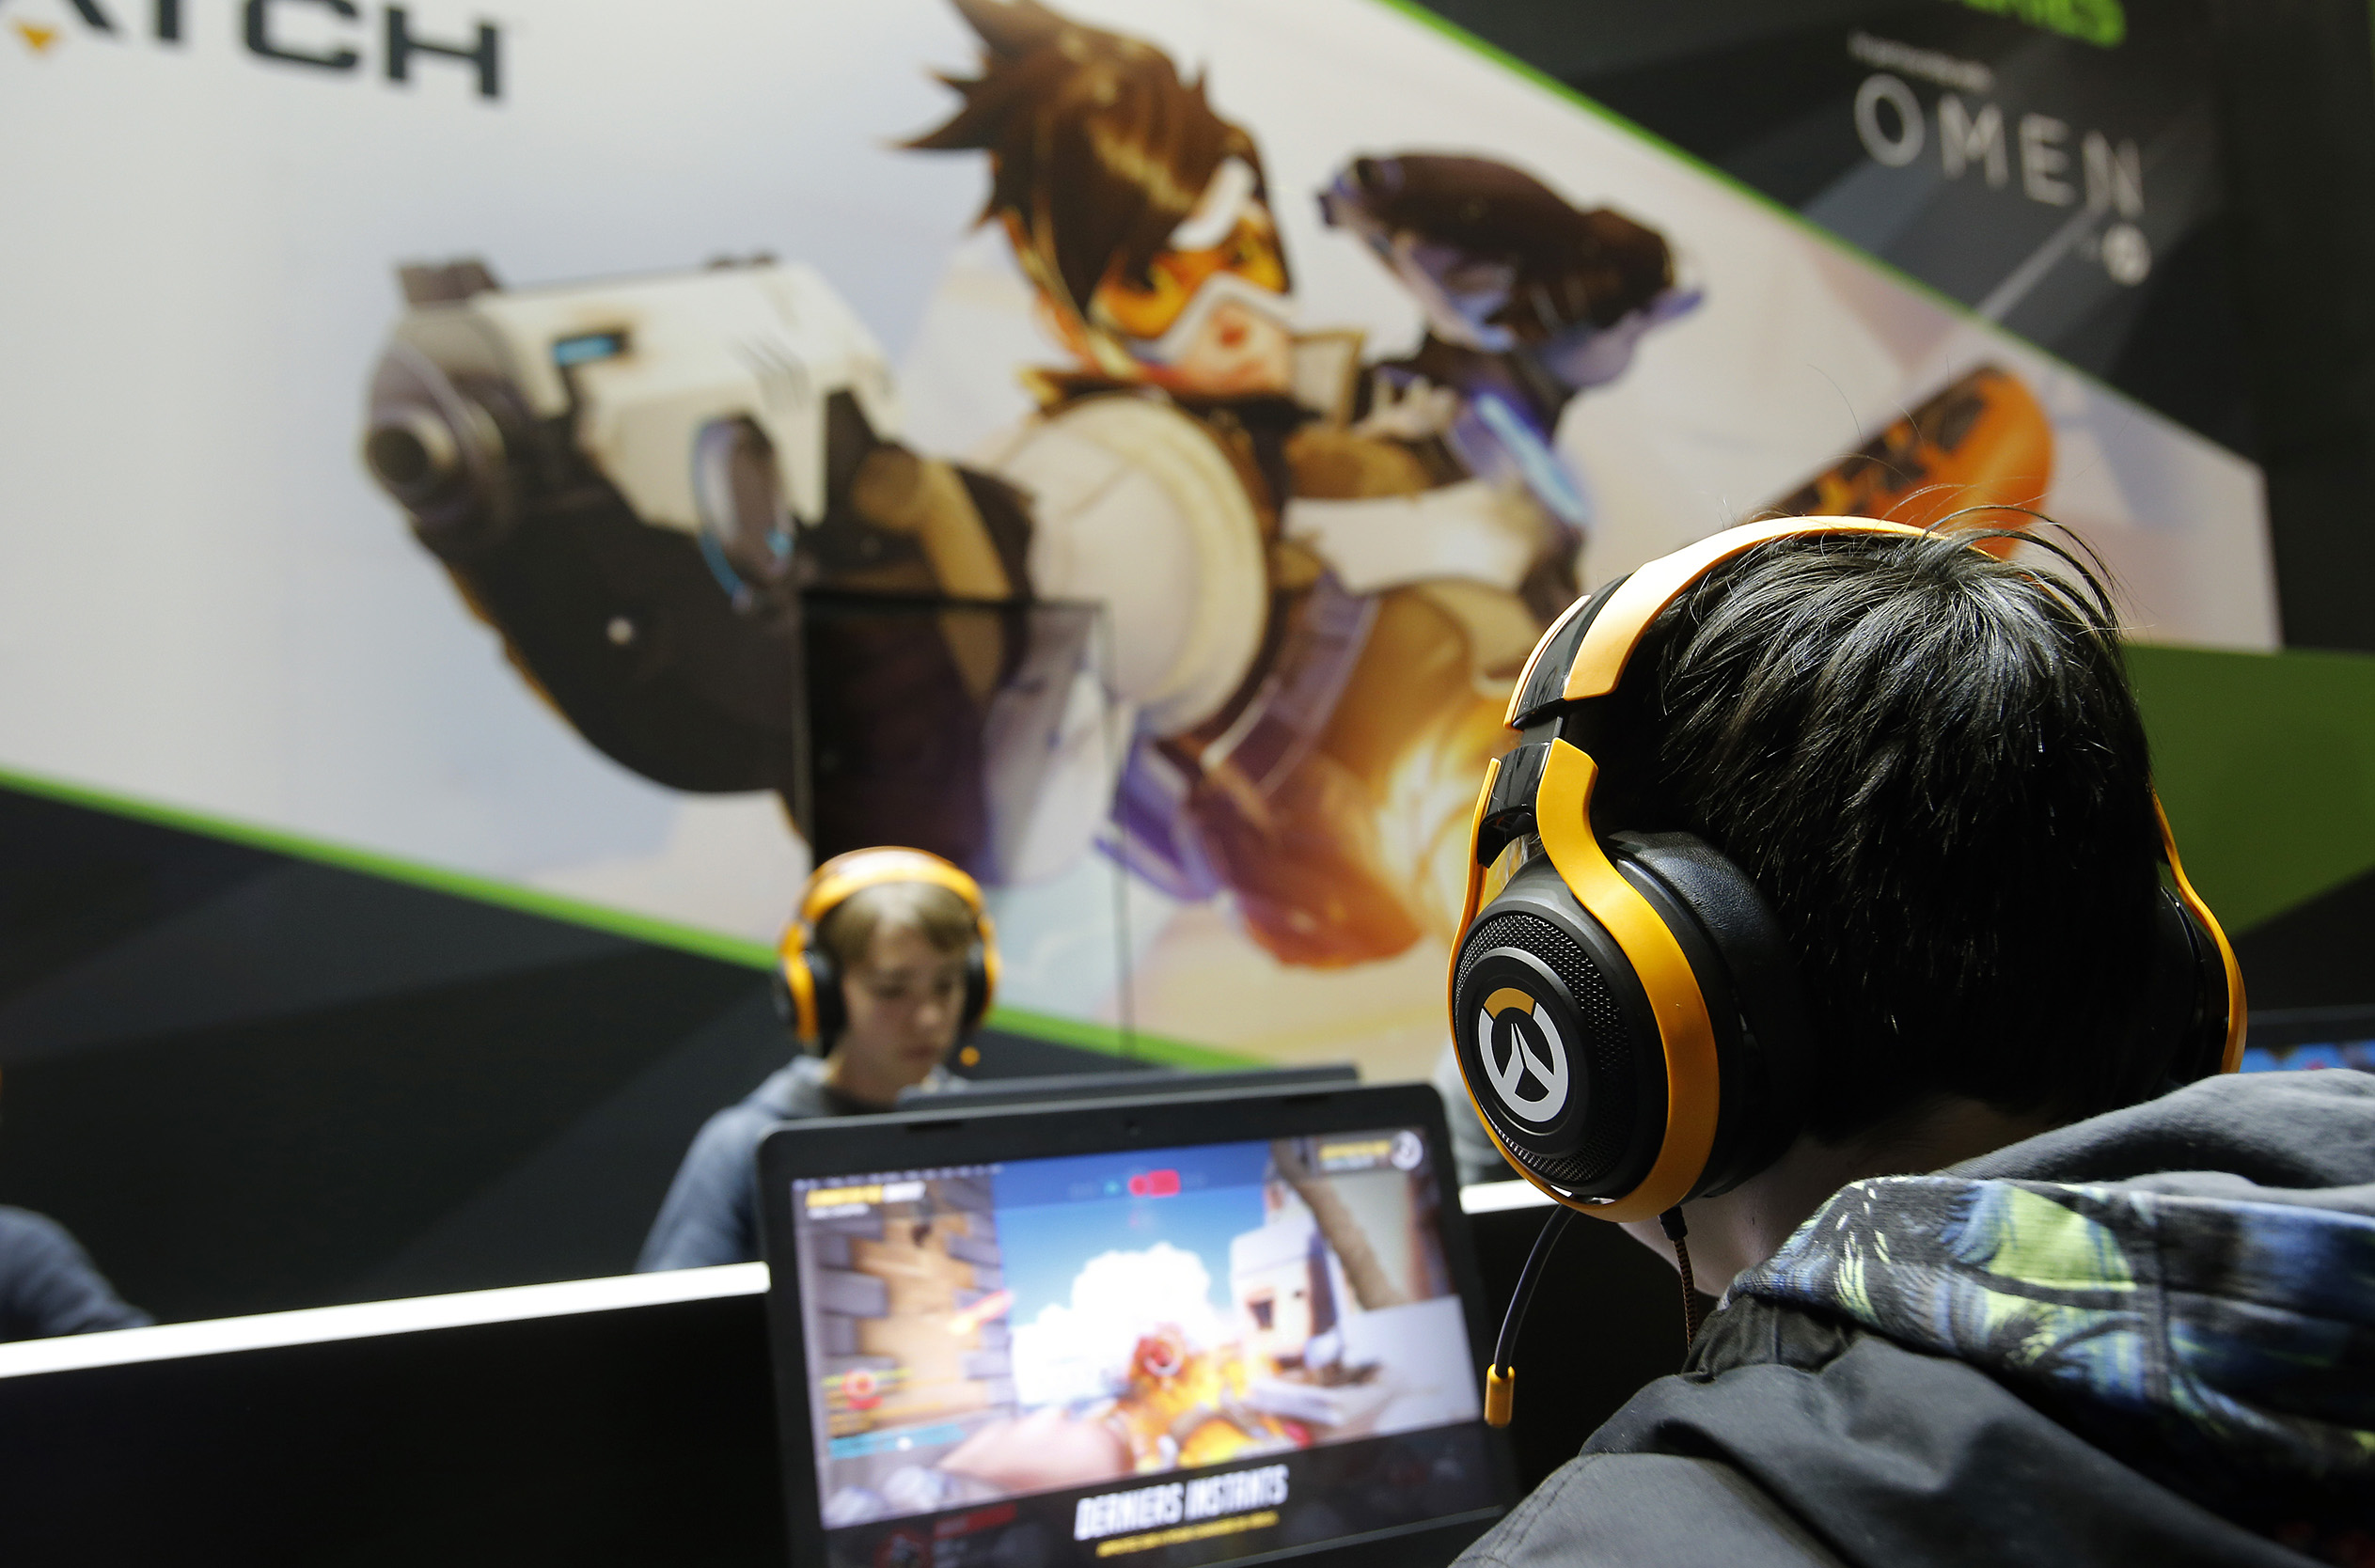 An Overwatch hacker in South Korea just got sentenced to a year in